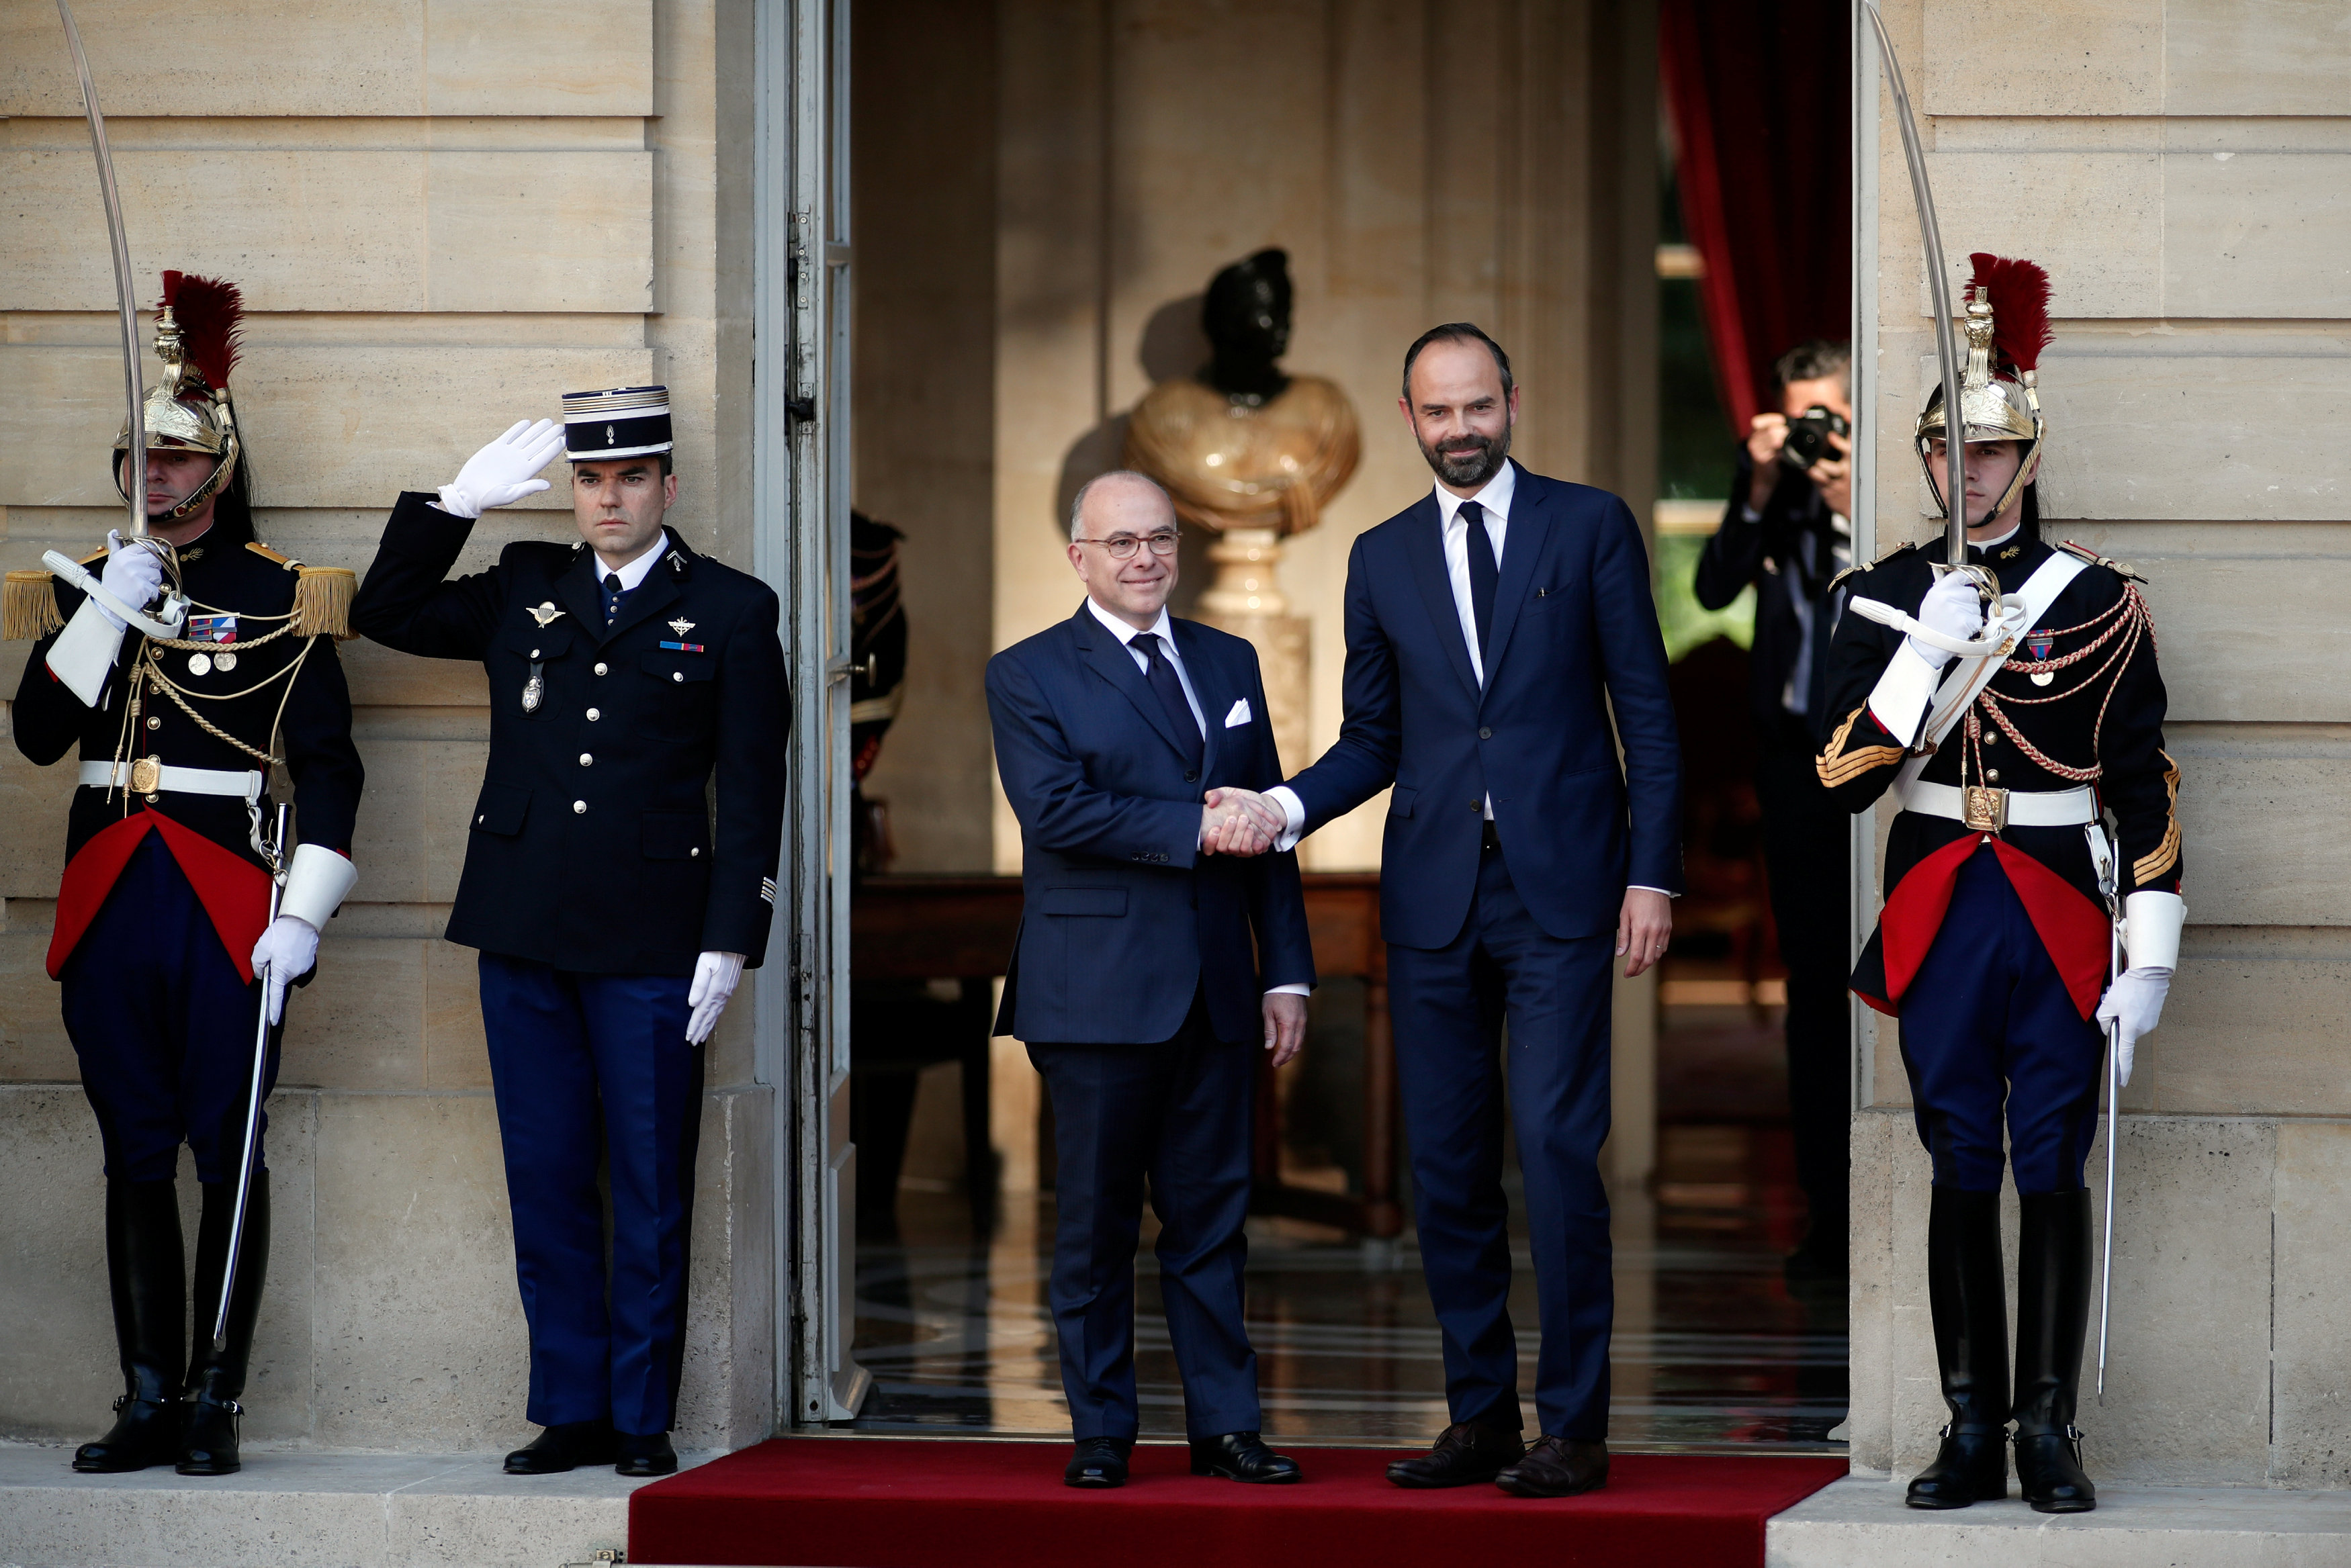 Newly-appointed French Prime Minister Edouard Philippe (R) is greeted by his predecessor Bernard Cazeneuve (L) during a handover ceremony at the Hotel Matignon, in Paris, France on May 15, 2017. ( REUTERS/Benoit Tessier)